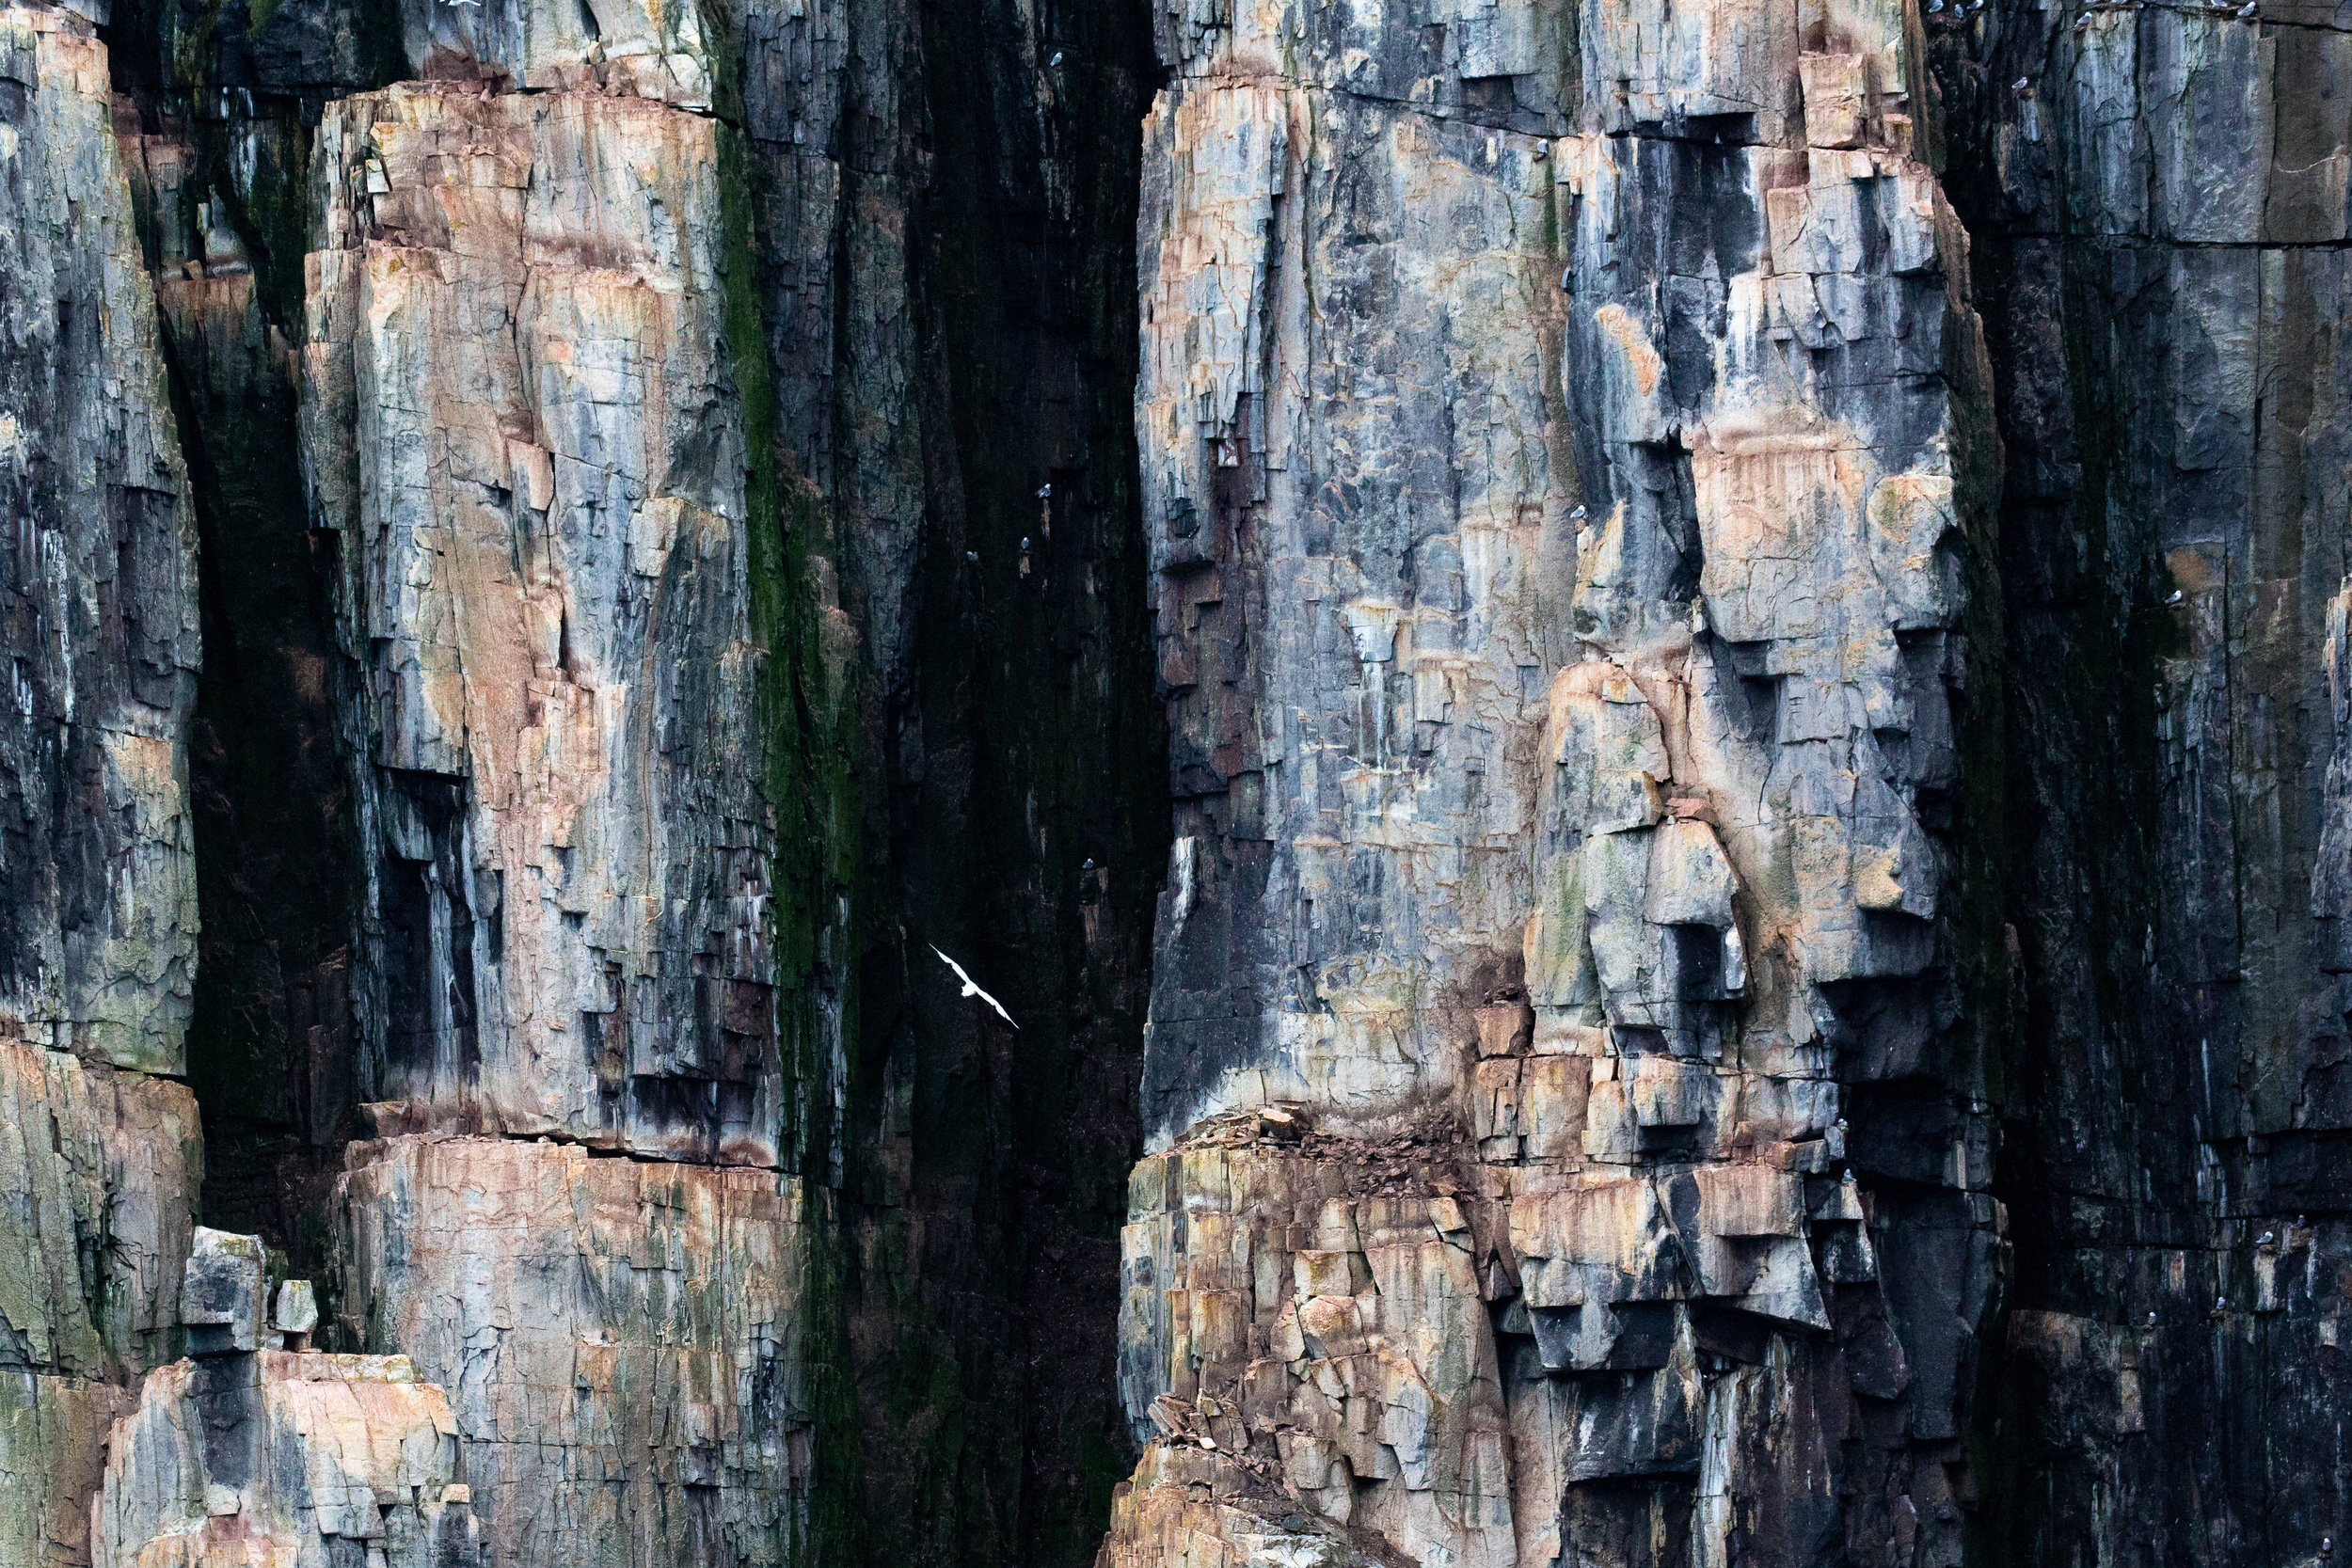 A black-legged kittiwake flies among the jagged cliffs of Alkefjellet in Northern Svalbard. The cliffs and spires which rise like skyscrapers 350 feet out of the Arctic ocean, are one of the most important bird nesting habitats in the archipelago. Though a sheer cliff may seem like a strange place for any creature to make its home, the colorful and steep basalt columns provide guillemots, kittiwakes, and gulls with a nesting habitat that is inaccessible from possible predators like the egg-loving Arctic fox. Each summer, the cliffs come to life with birds as 60,000 guillemots and thousands more of kittiwakes and gulls fill every ledge and nook of the small, glacier encircled cliff-band.